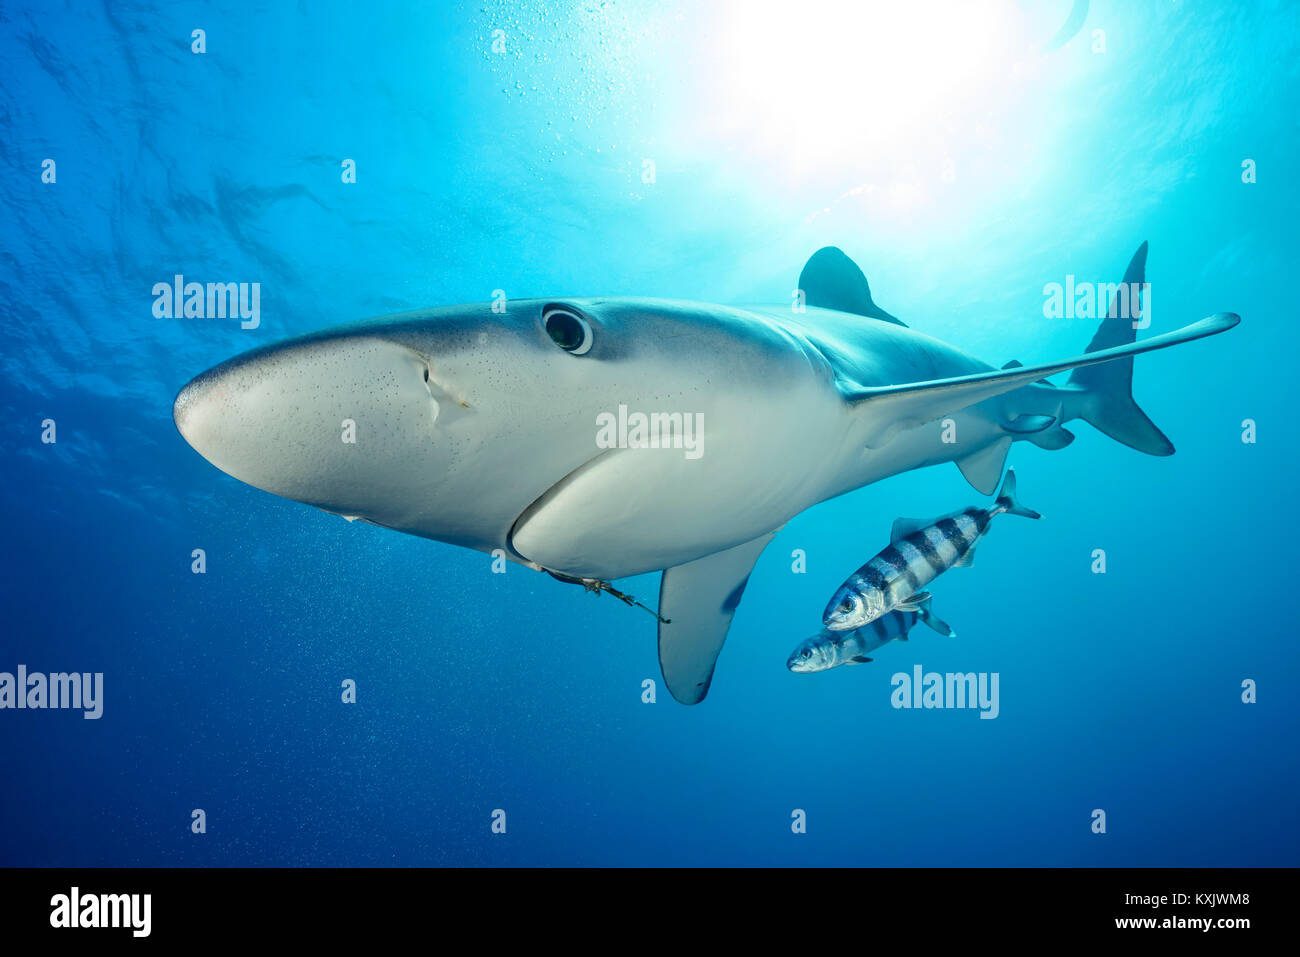 Blue shark and Pilotfish, Prionace glauca, Naucrates ductor, Cape of Good Hope, South Africa, offshore in the Atlantic - Stock Image